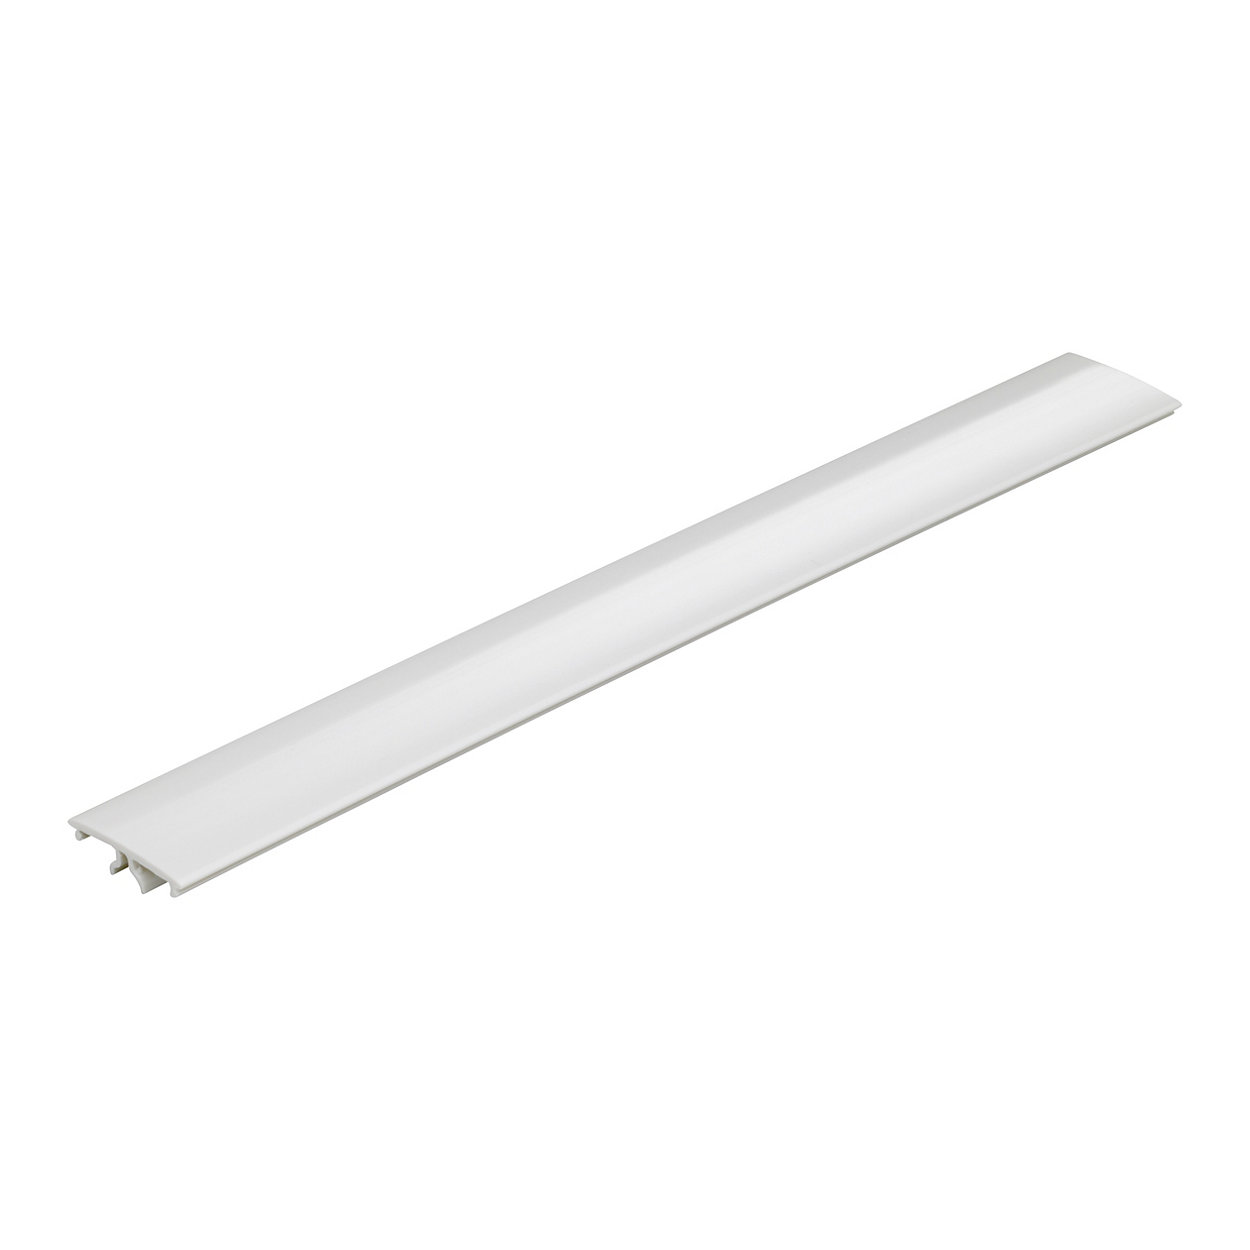 iColor Flex LMX gen2 – flexible strands of large high-intensity LED nodes with intelligent color light